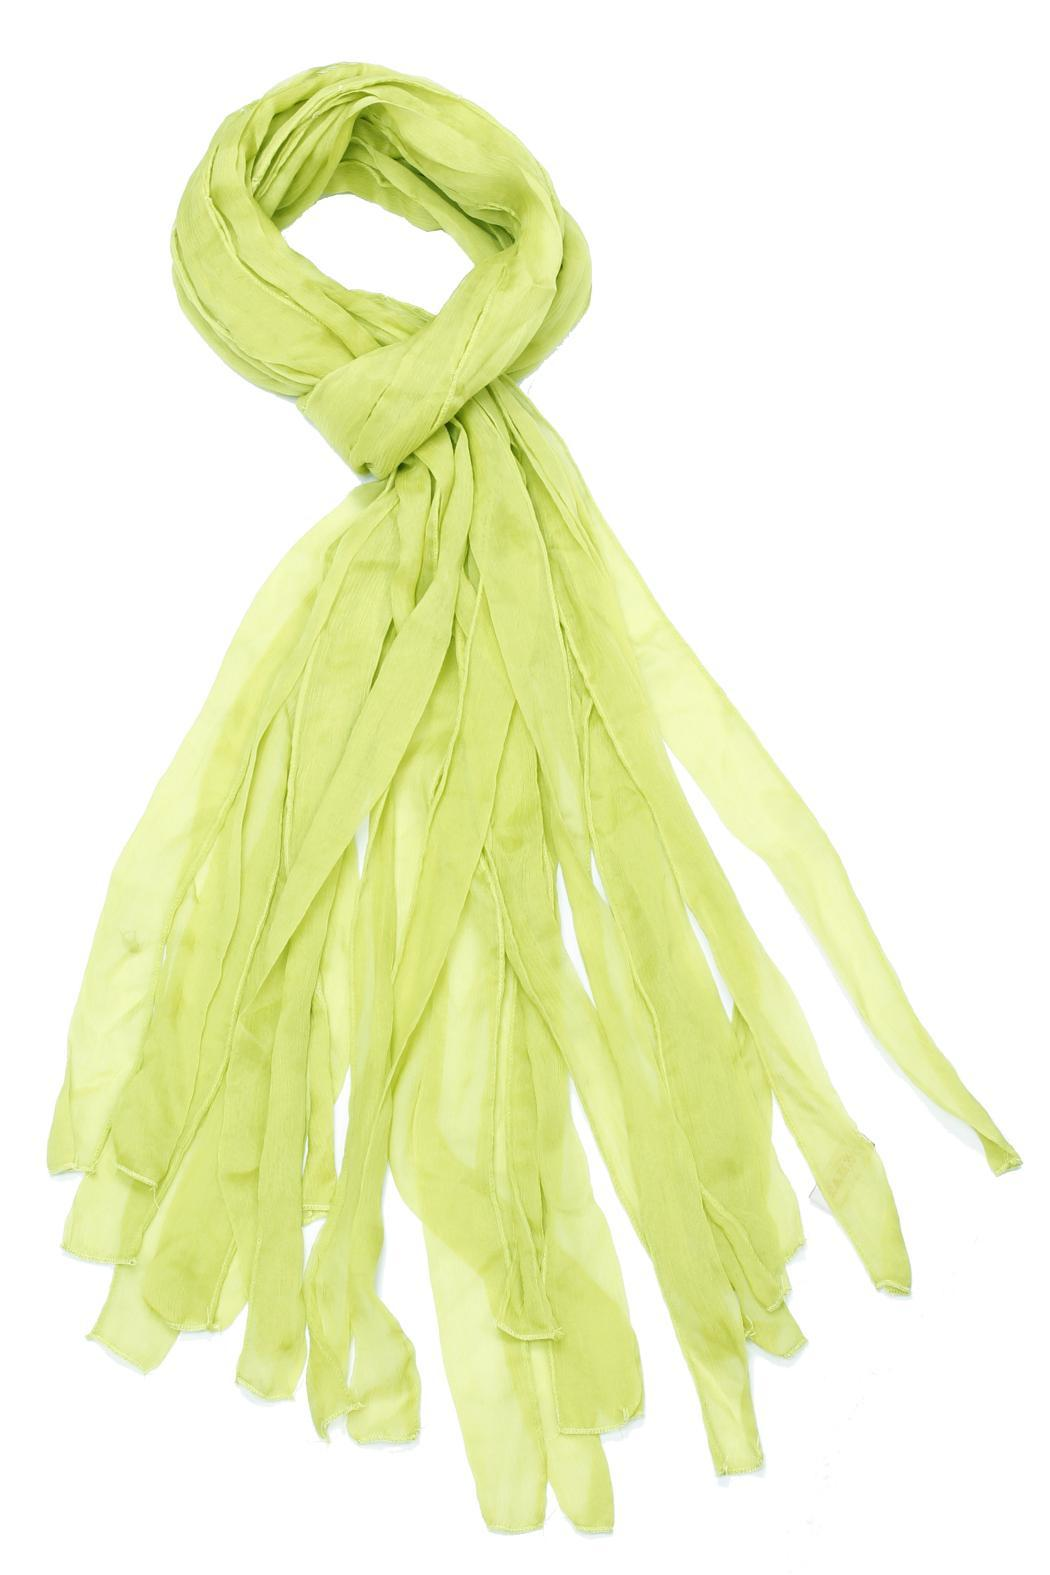 Violet Del Mar Octopus Frilly Scarf - Front Cropped Image